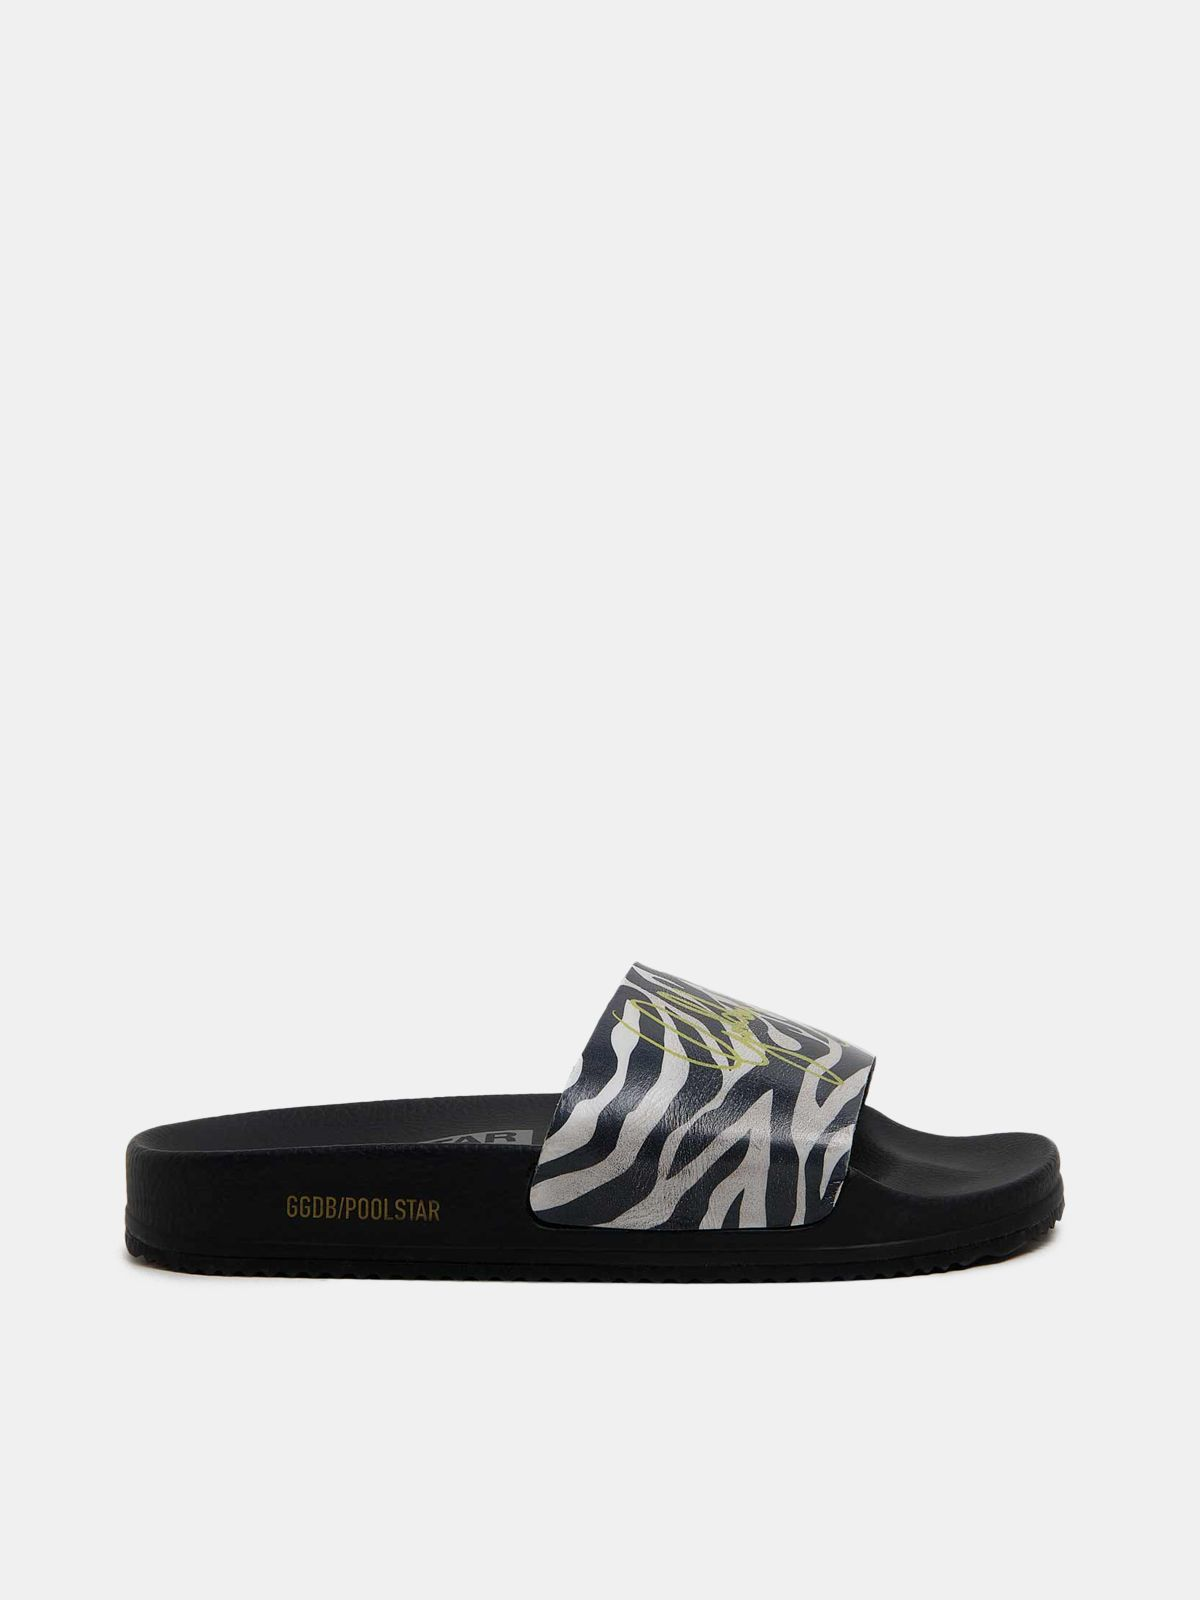 Women's Poolstars with zebra-pattern strap